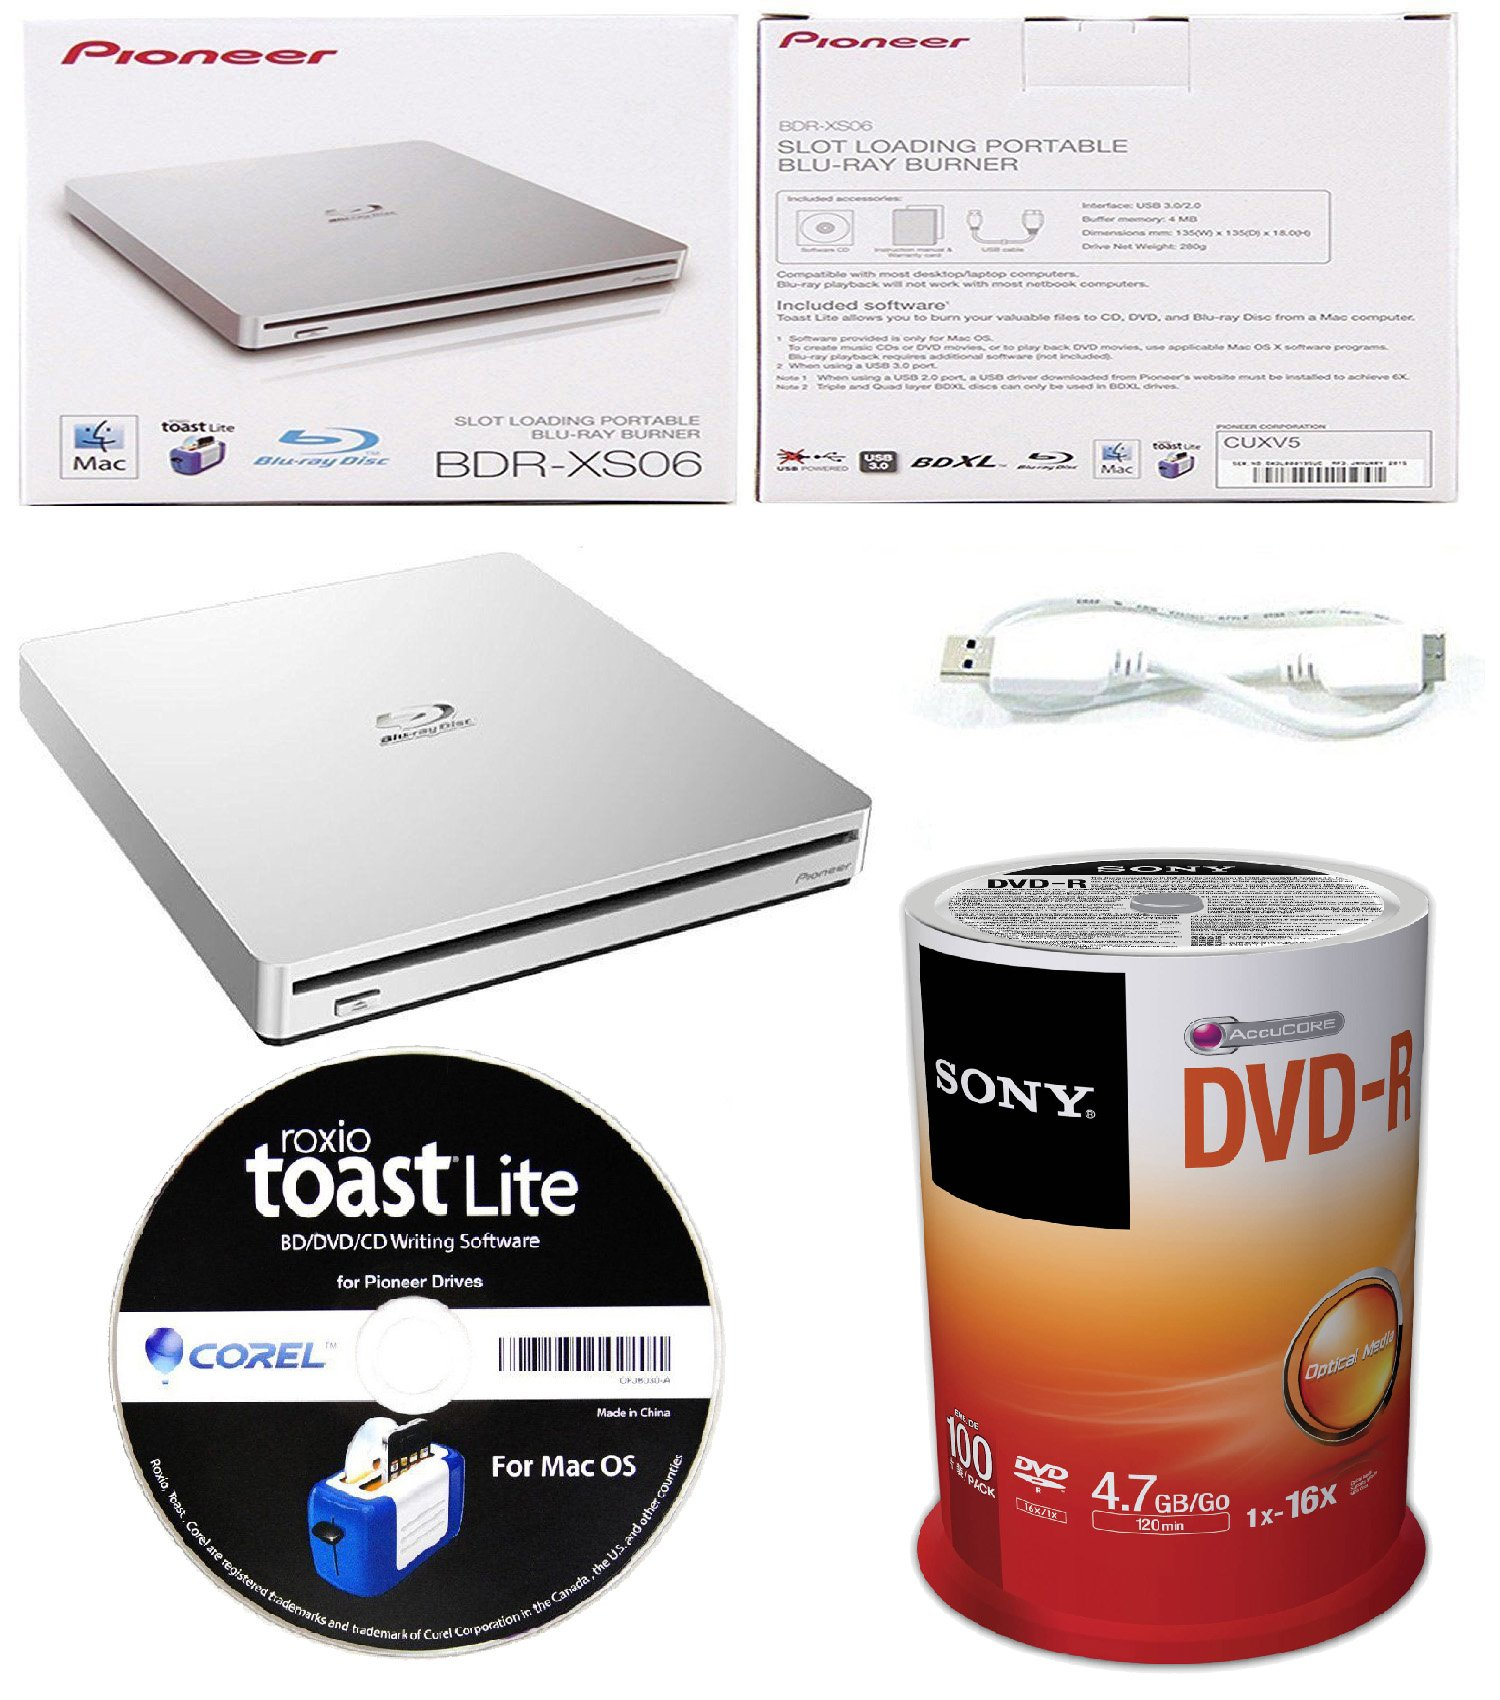 Pioneer 6x BDR-XS06 Slim Slot Portable External Blu-ray BDXL Burner, Roxio Toast Lite Software and USB Cable Bundle with 100pk DVD-R Sony Accucore 4.7GB 16X Recordable Media